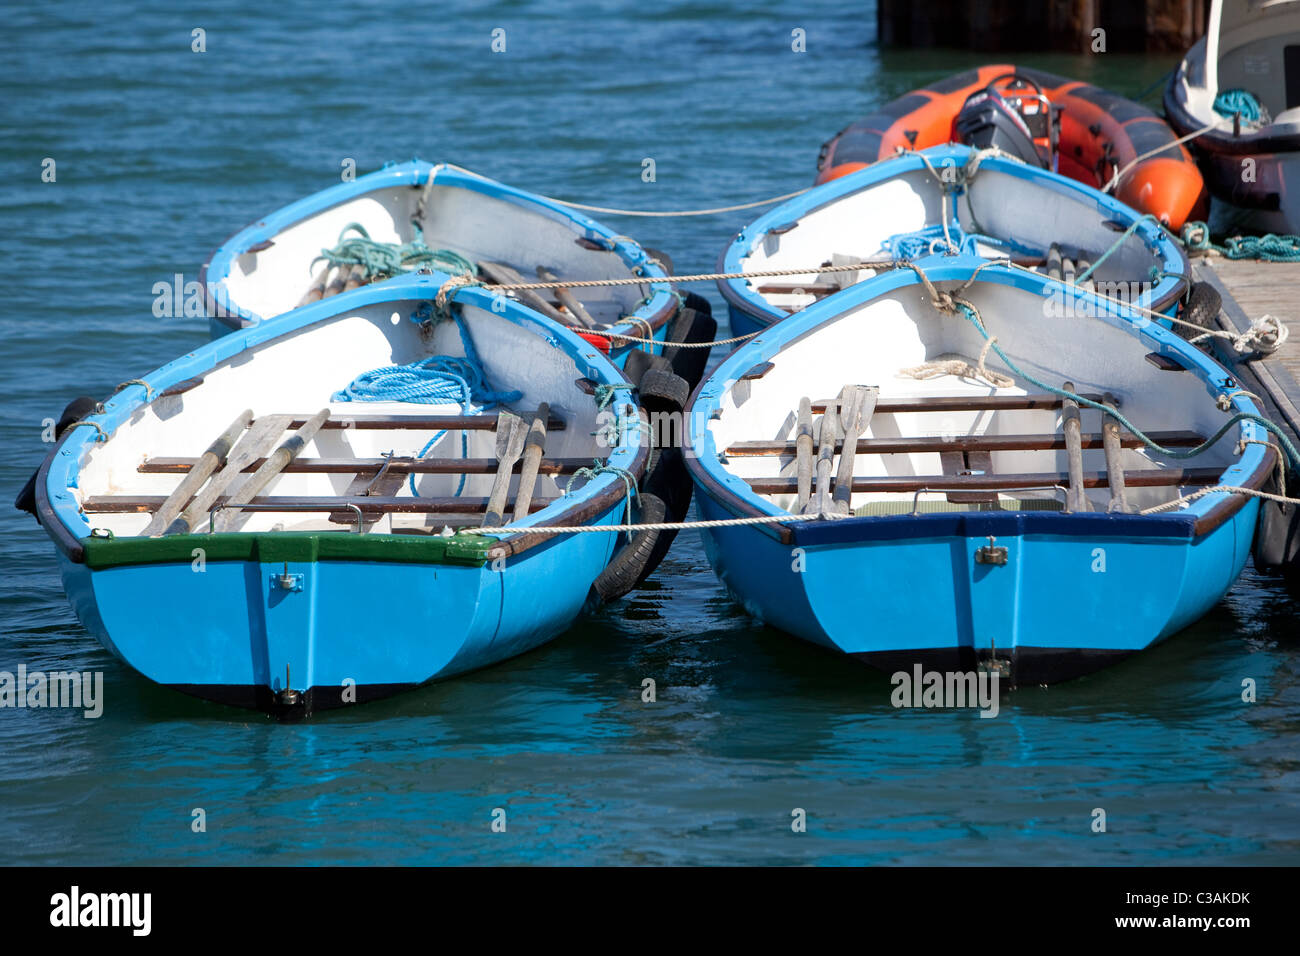 Rowing Boats Stonehaven Harbour Grampian Scotland UK Stock Photo